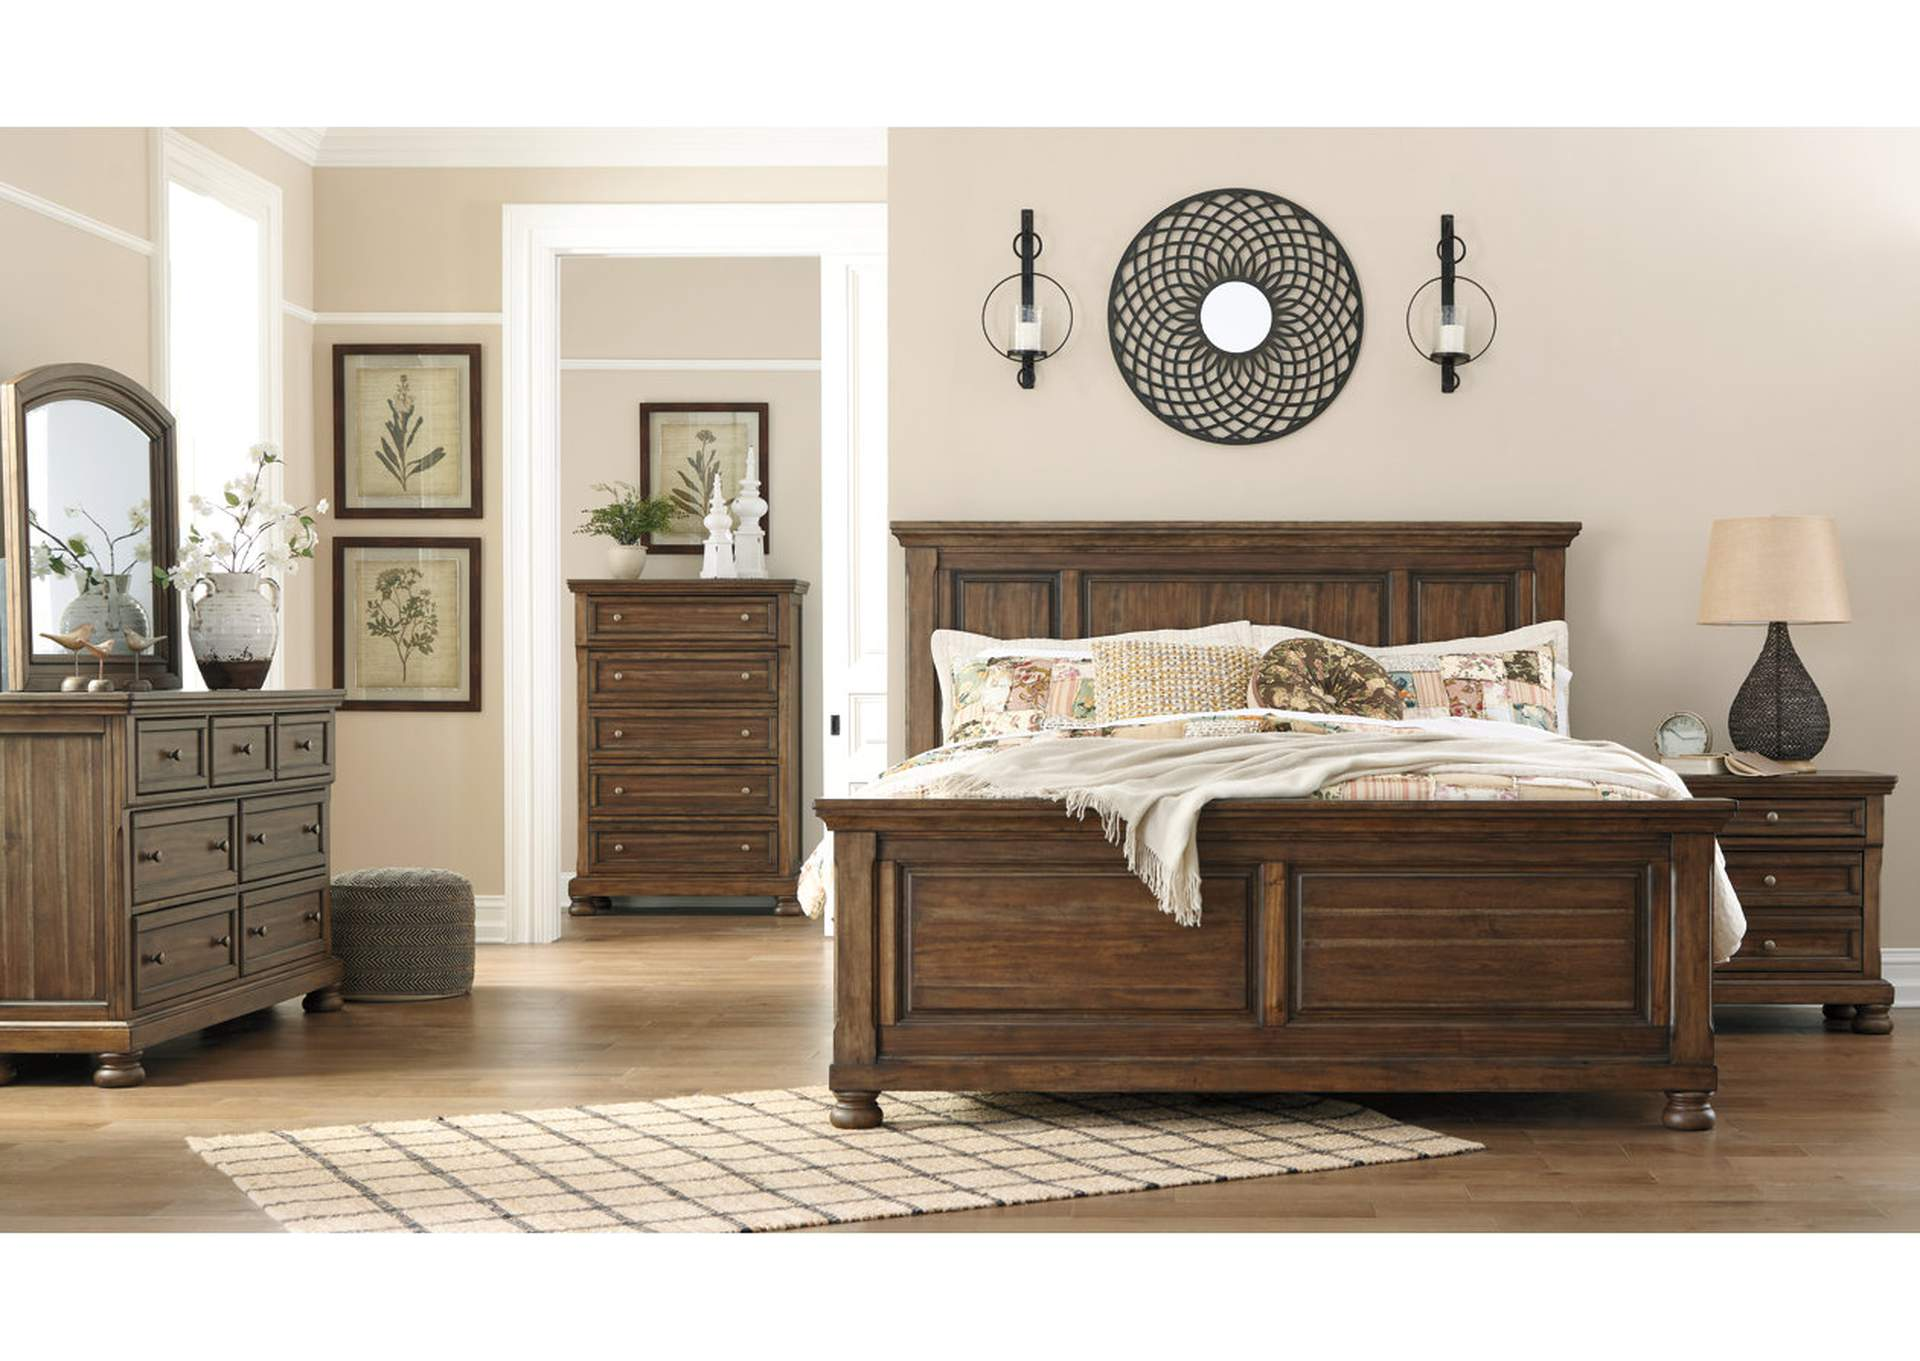 Flynnter Medium Brown Five Drawer Chest,Signature Design By Ashley